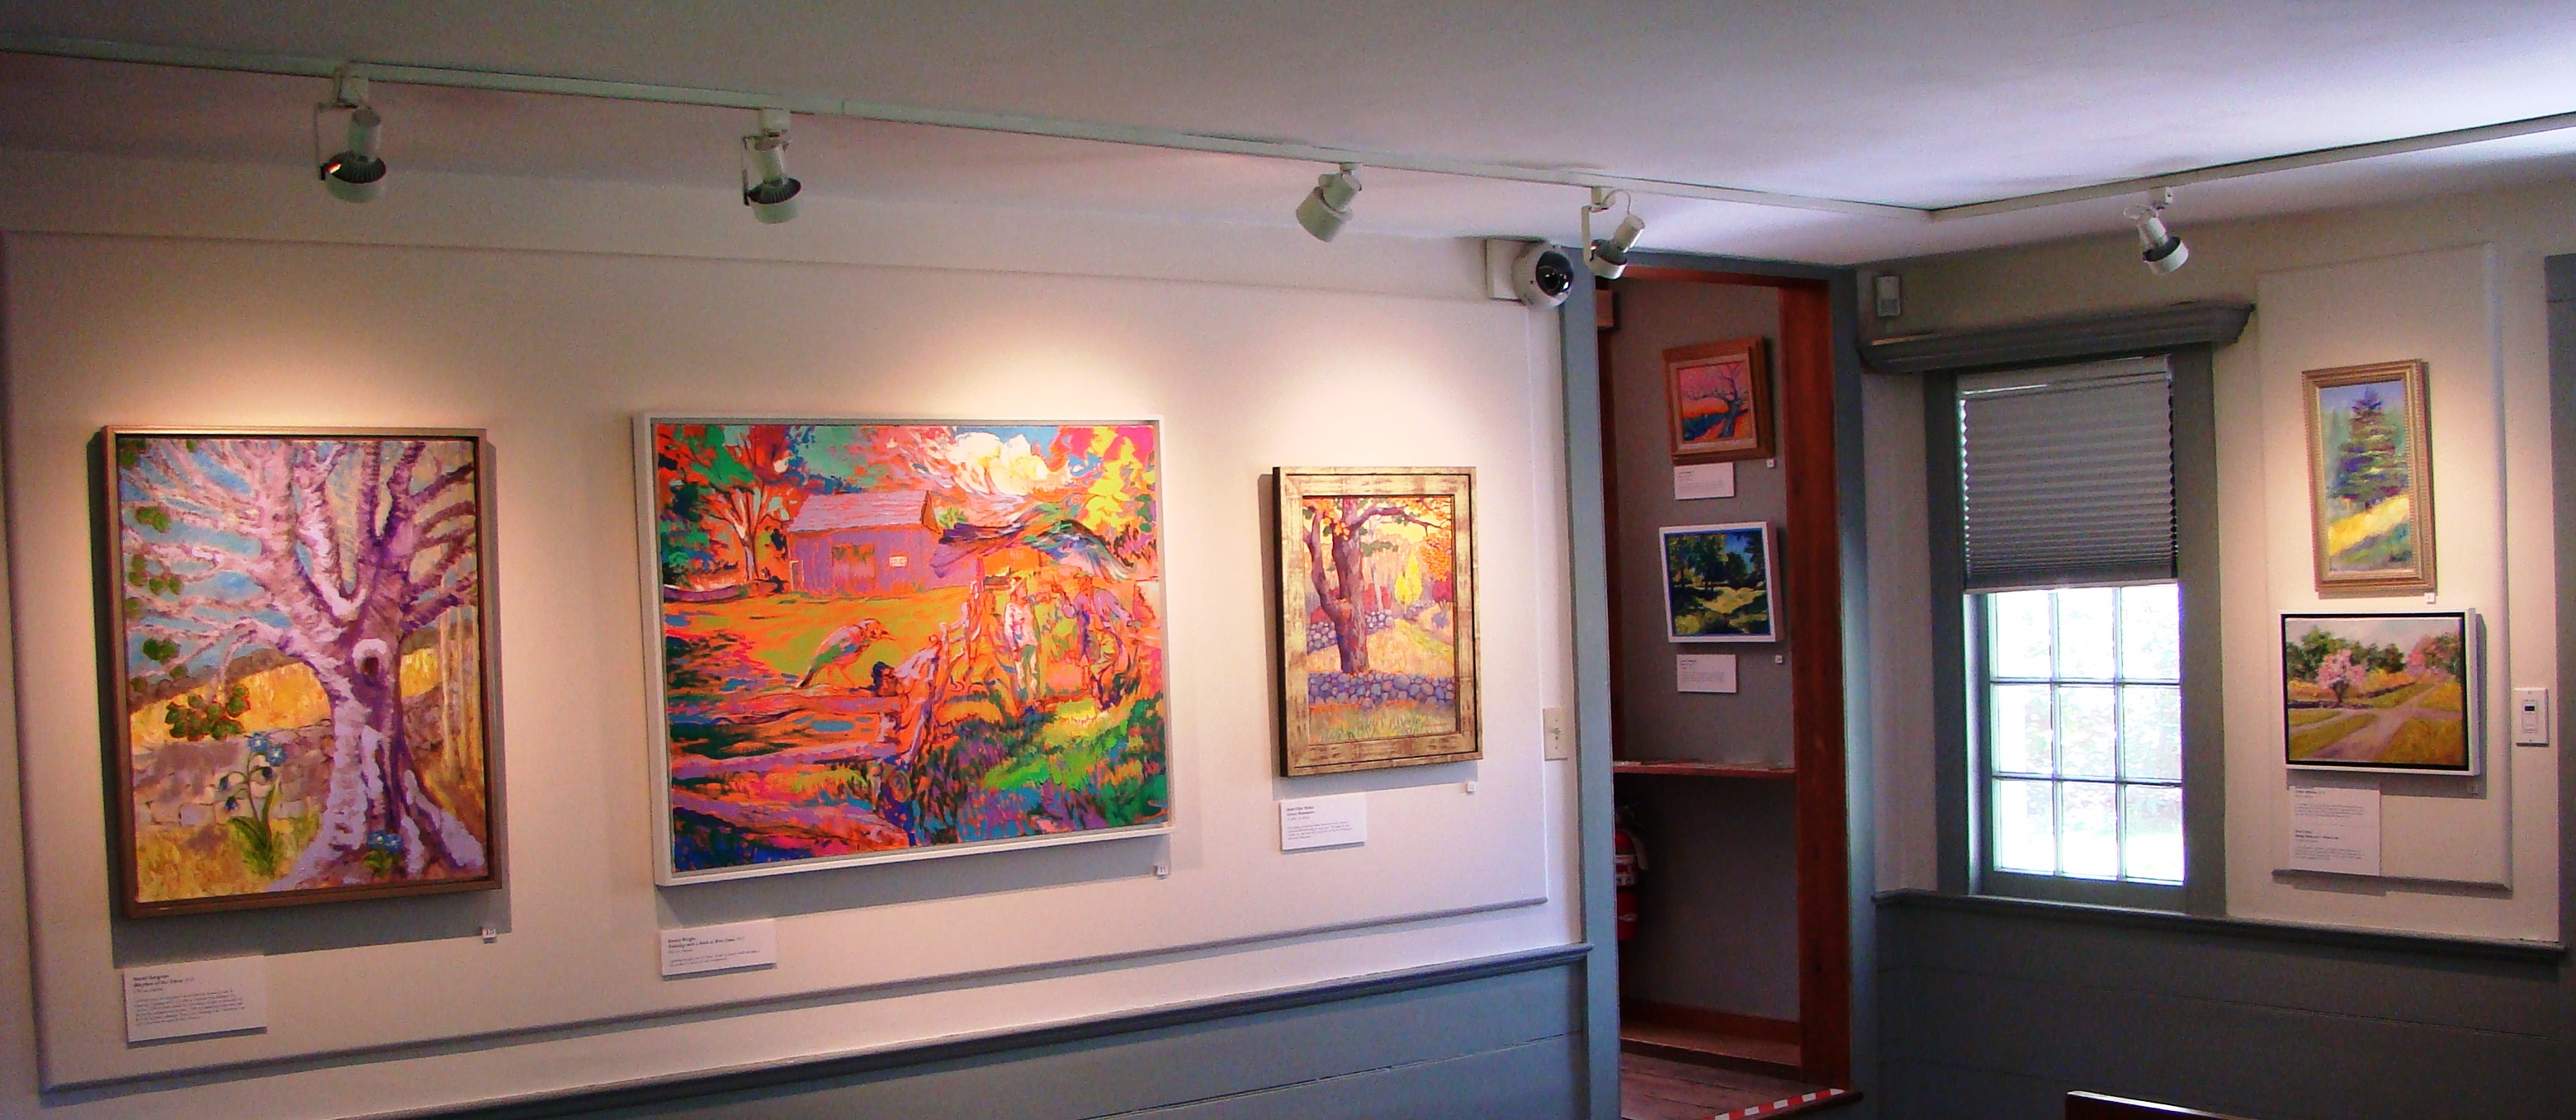 Several brightly colored landscape paintings against a white gallery wall.